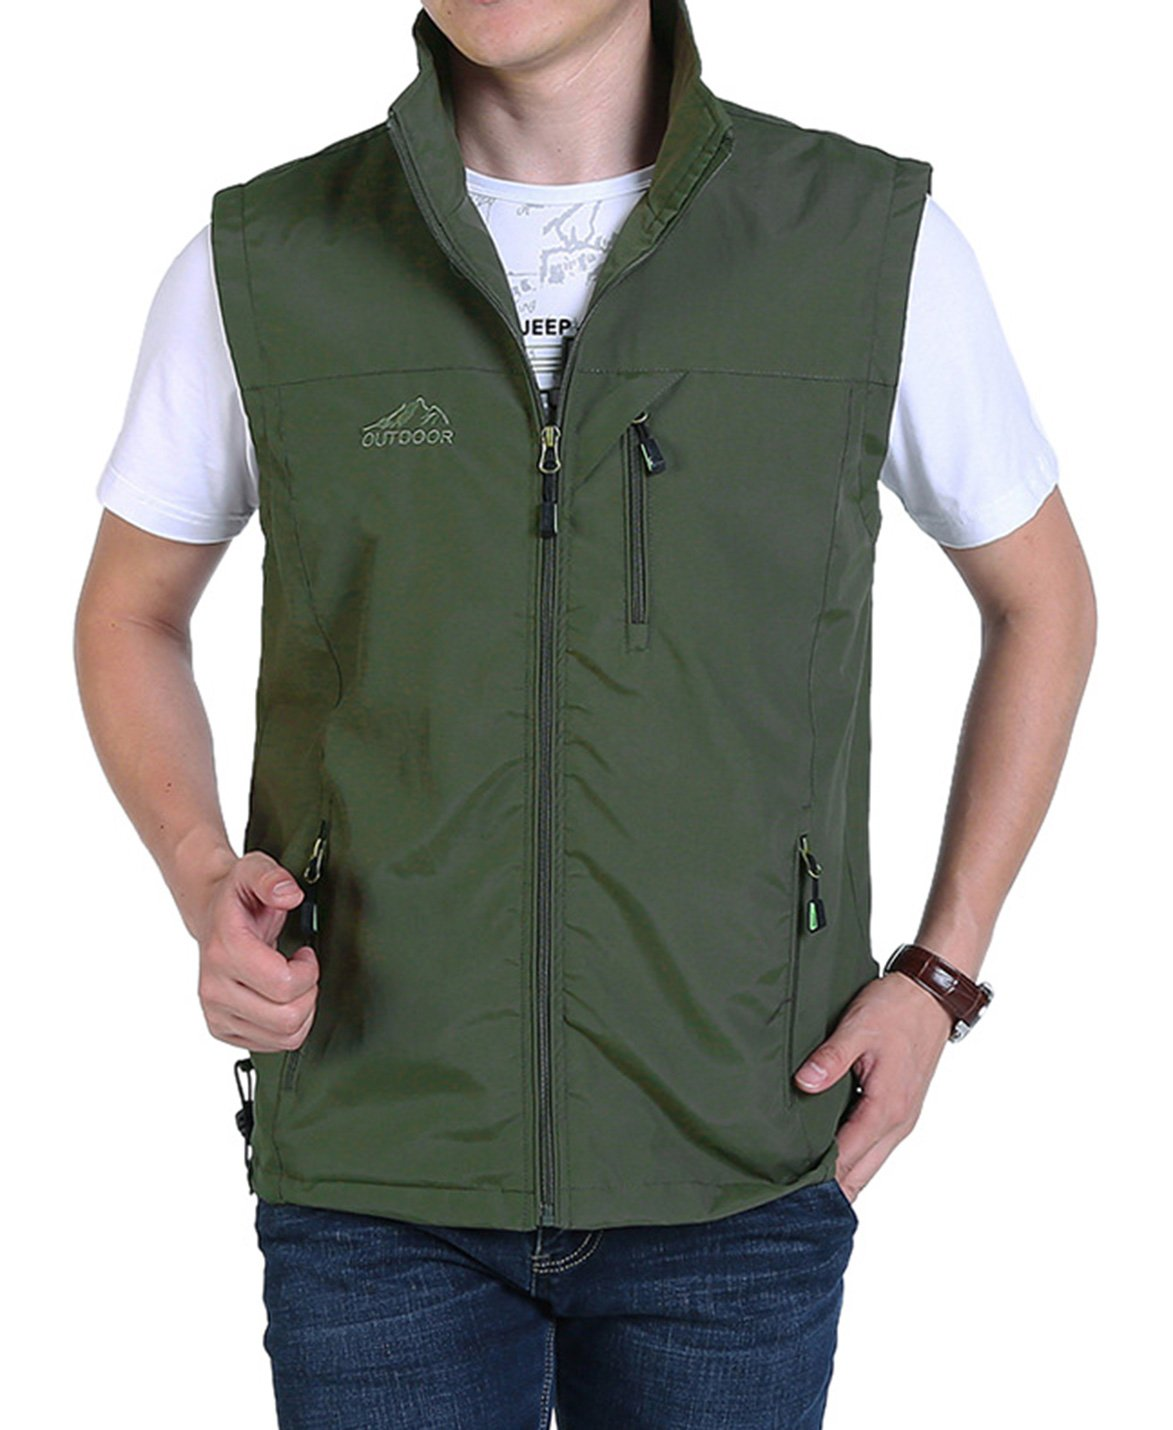 Yimoon Men's Safari Travel Vest Outdoor Lightweight Fishing Photo Vest